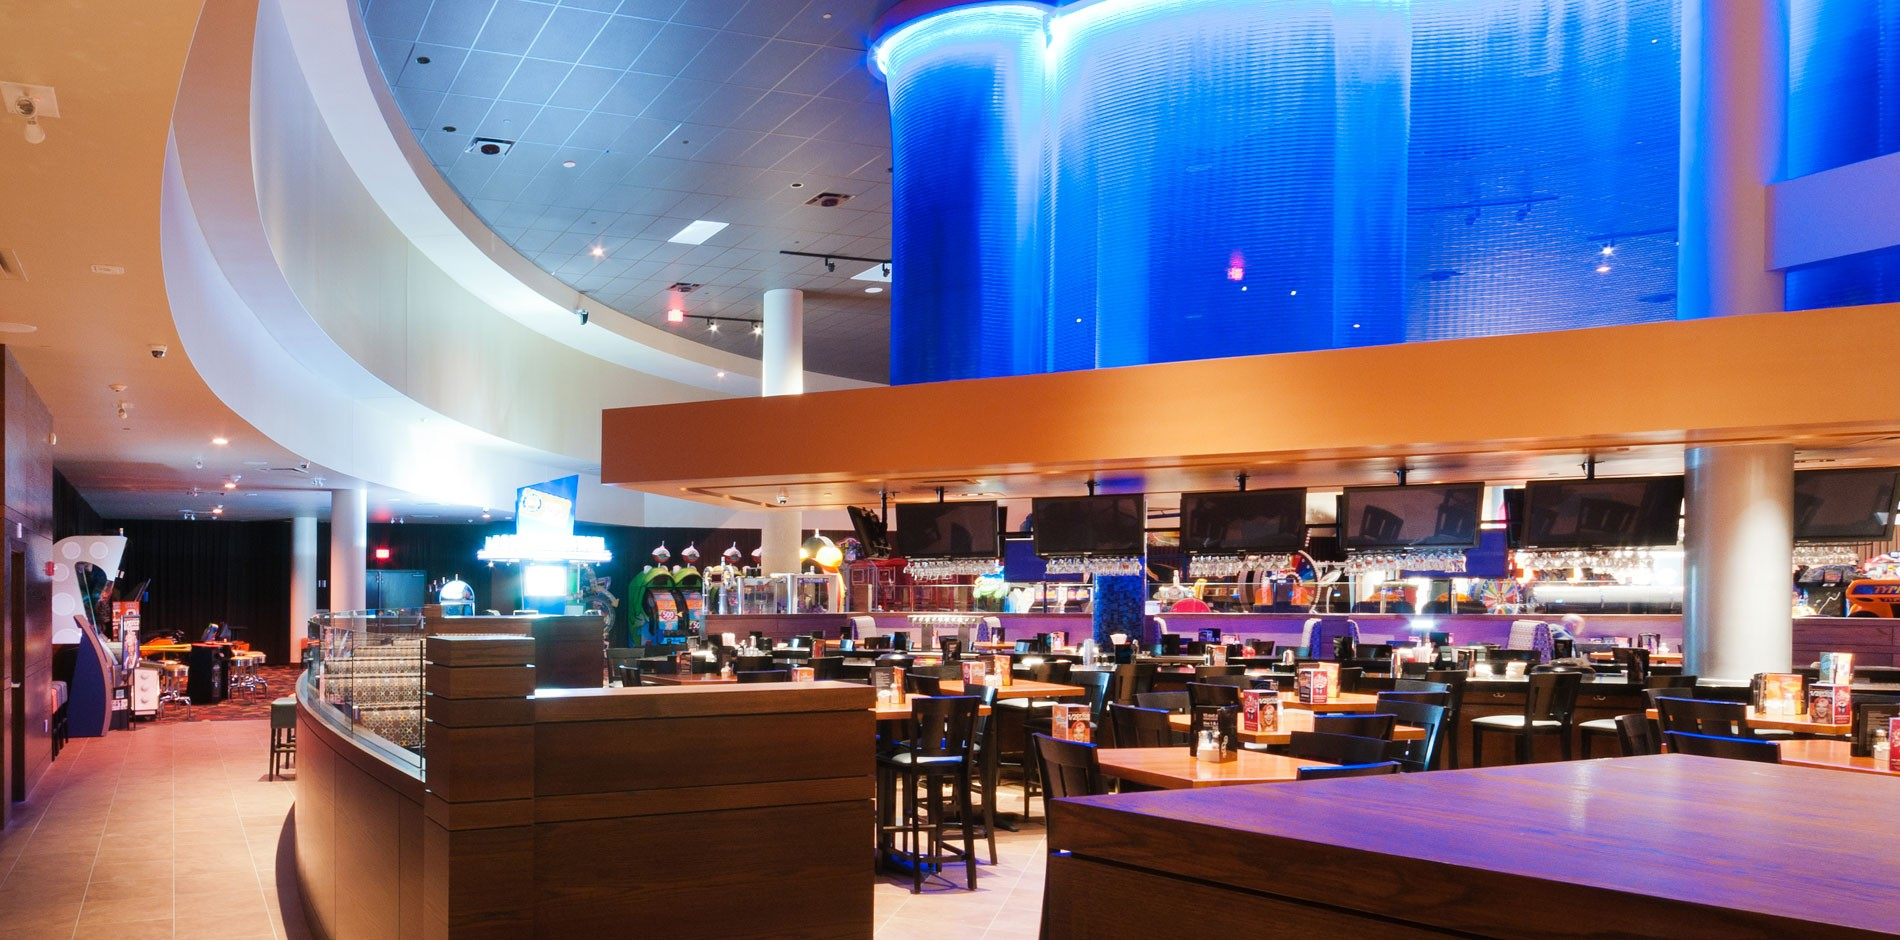 Dave & Buster's nearby in Massachusetts: Here are all 1 Dave & Buster's restaurant(s) in Massachusetts. Get restaurant menus, locations, hours, phone numbers, driving directions and more.